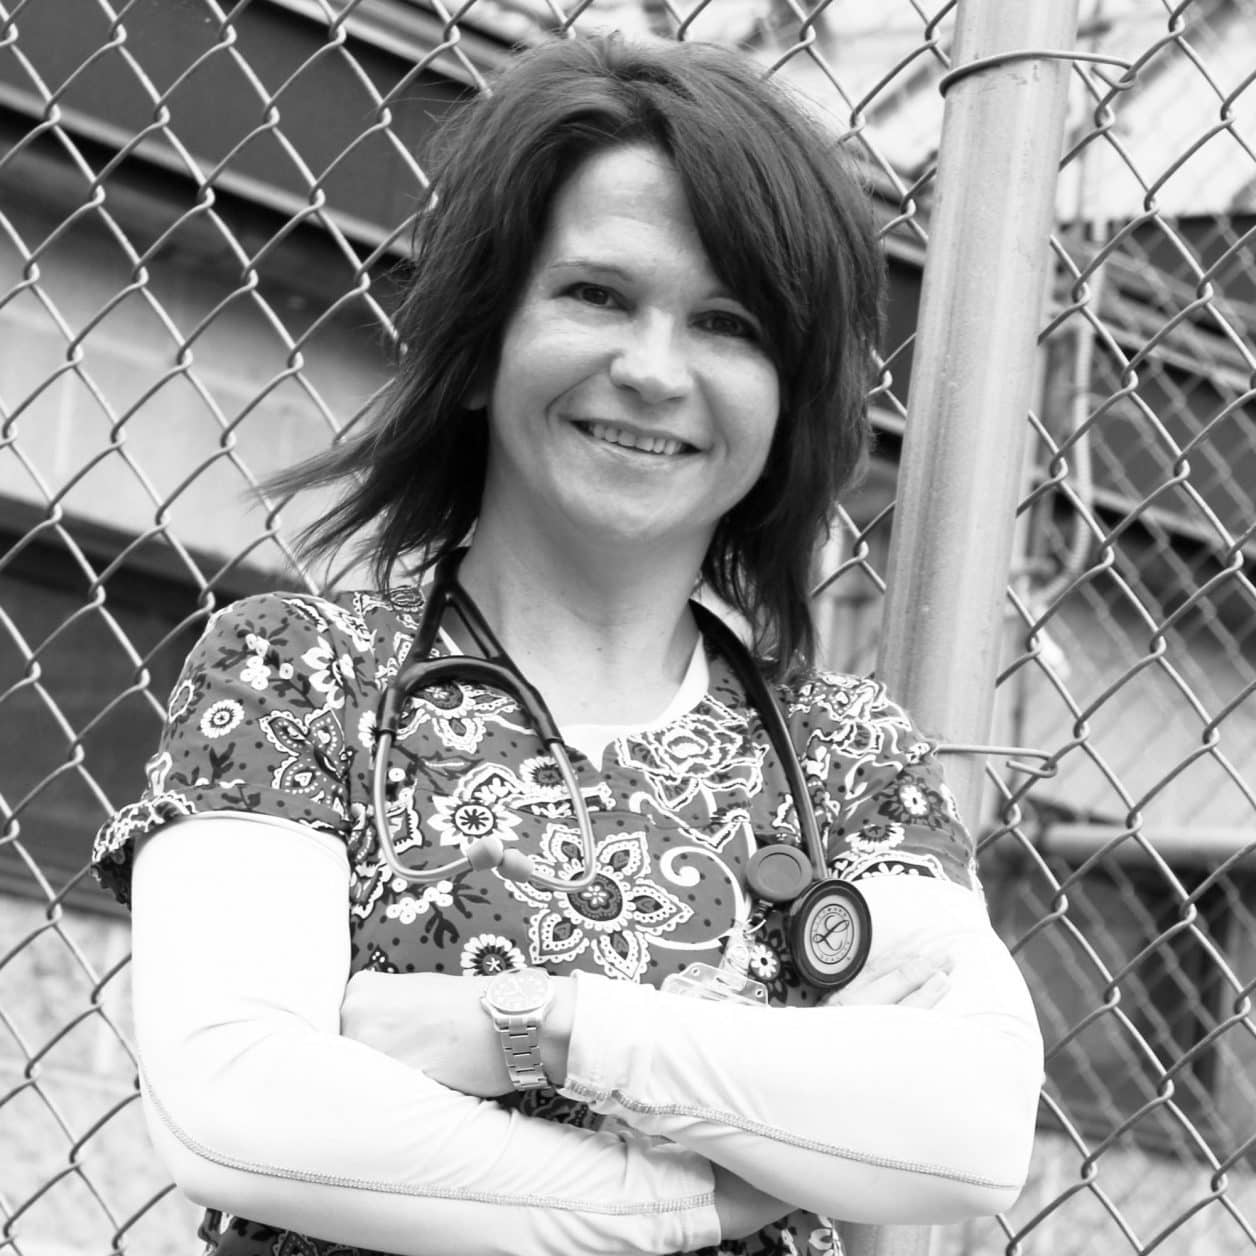 Female student, standing outside, arms crossed, nurse, stethoscope, smiling